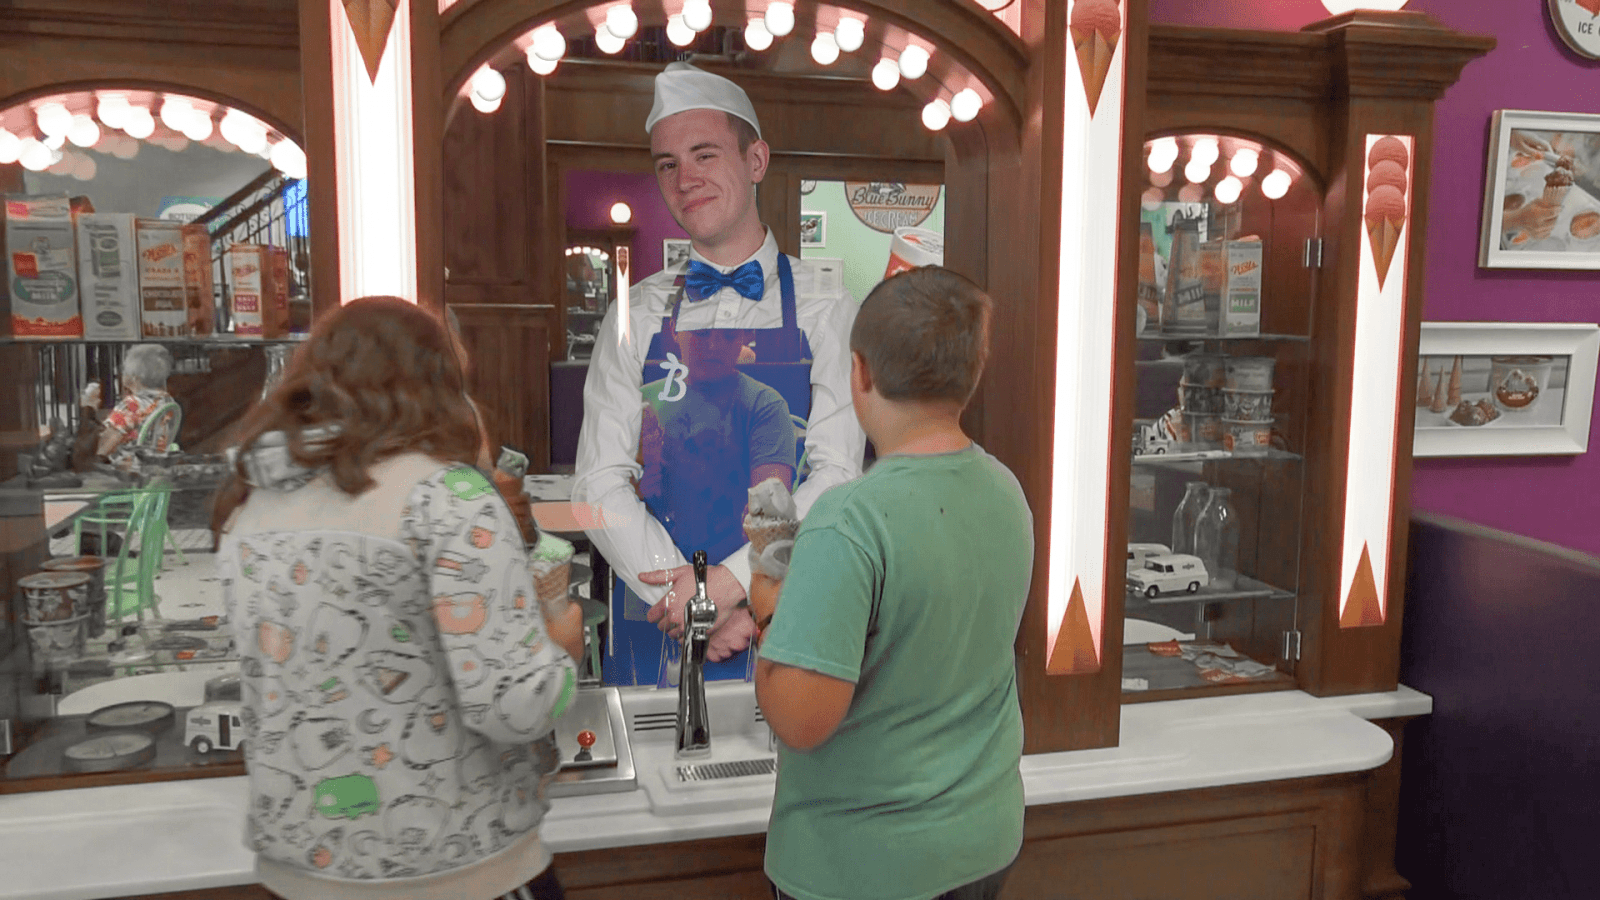 Wells Interactive Soda Fountain at their visitor center